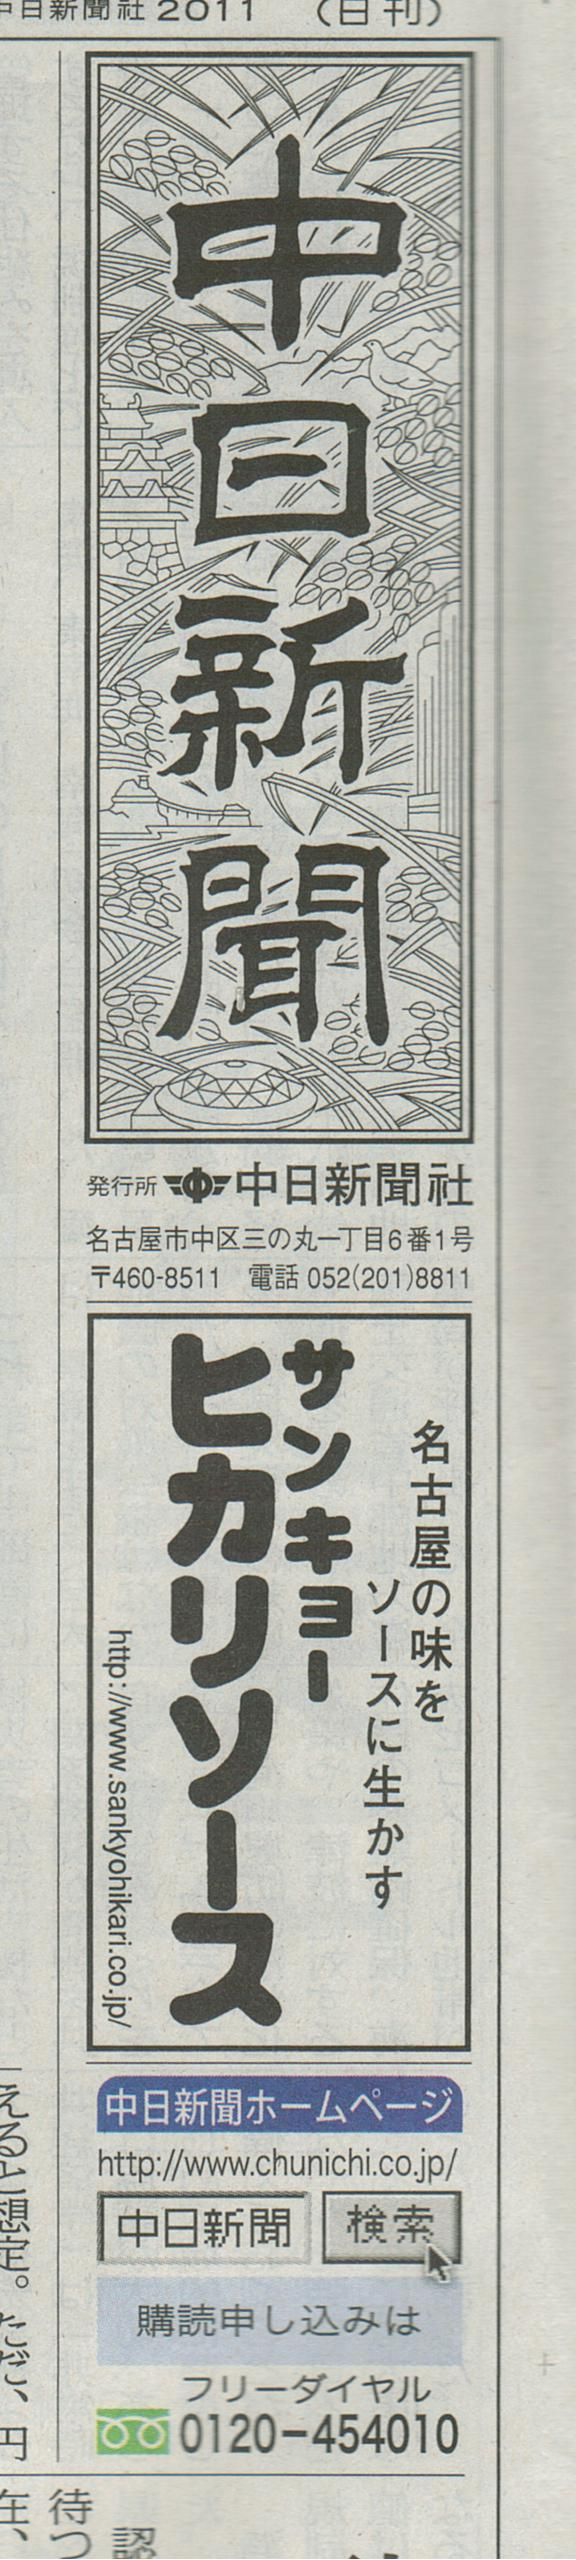 titre-journal-japon